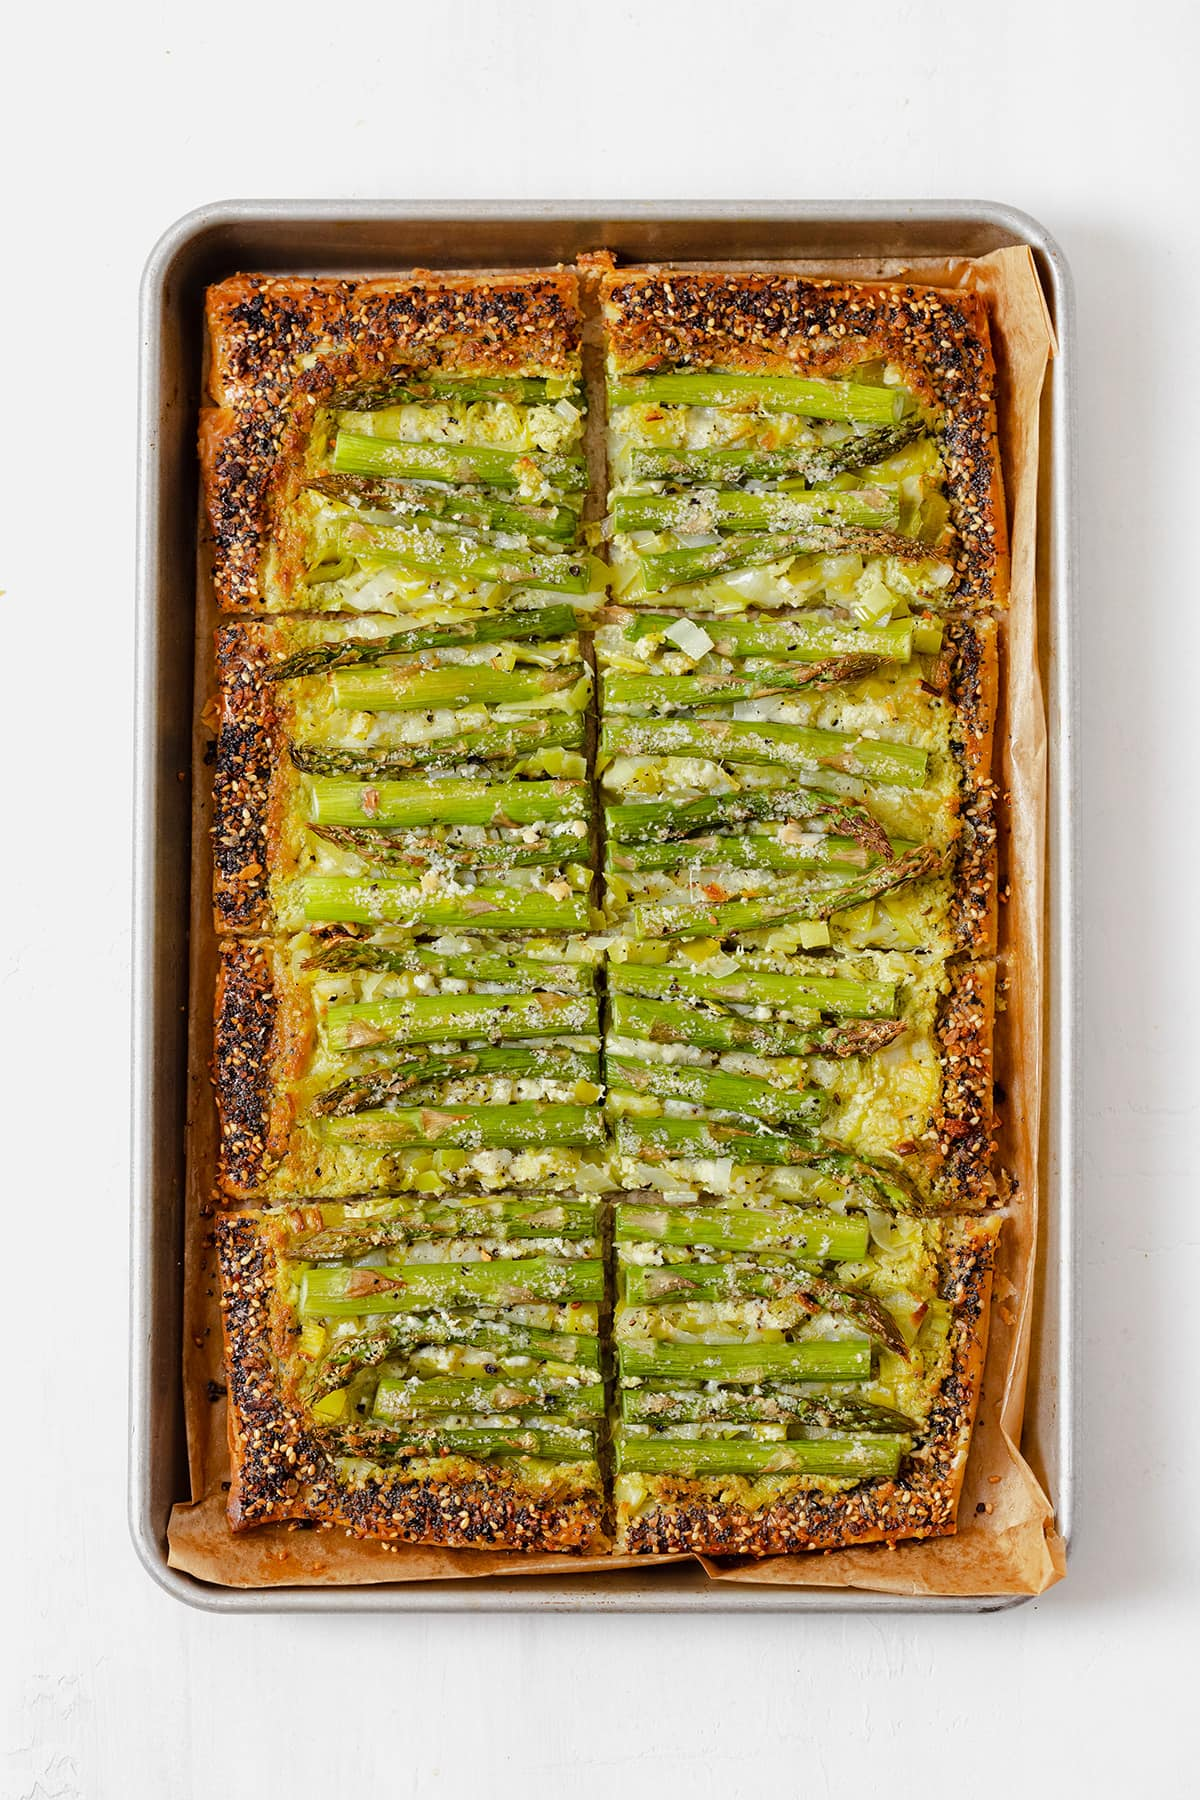 An asparagus tart on a baking sheet lined with parchment paper, cut into 8 squares.